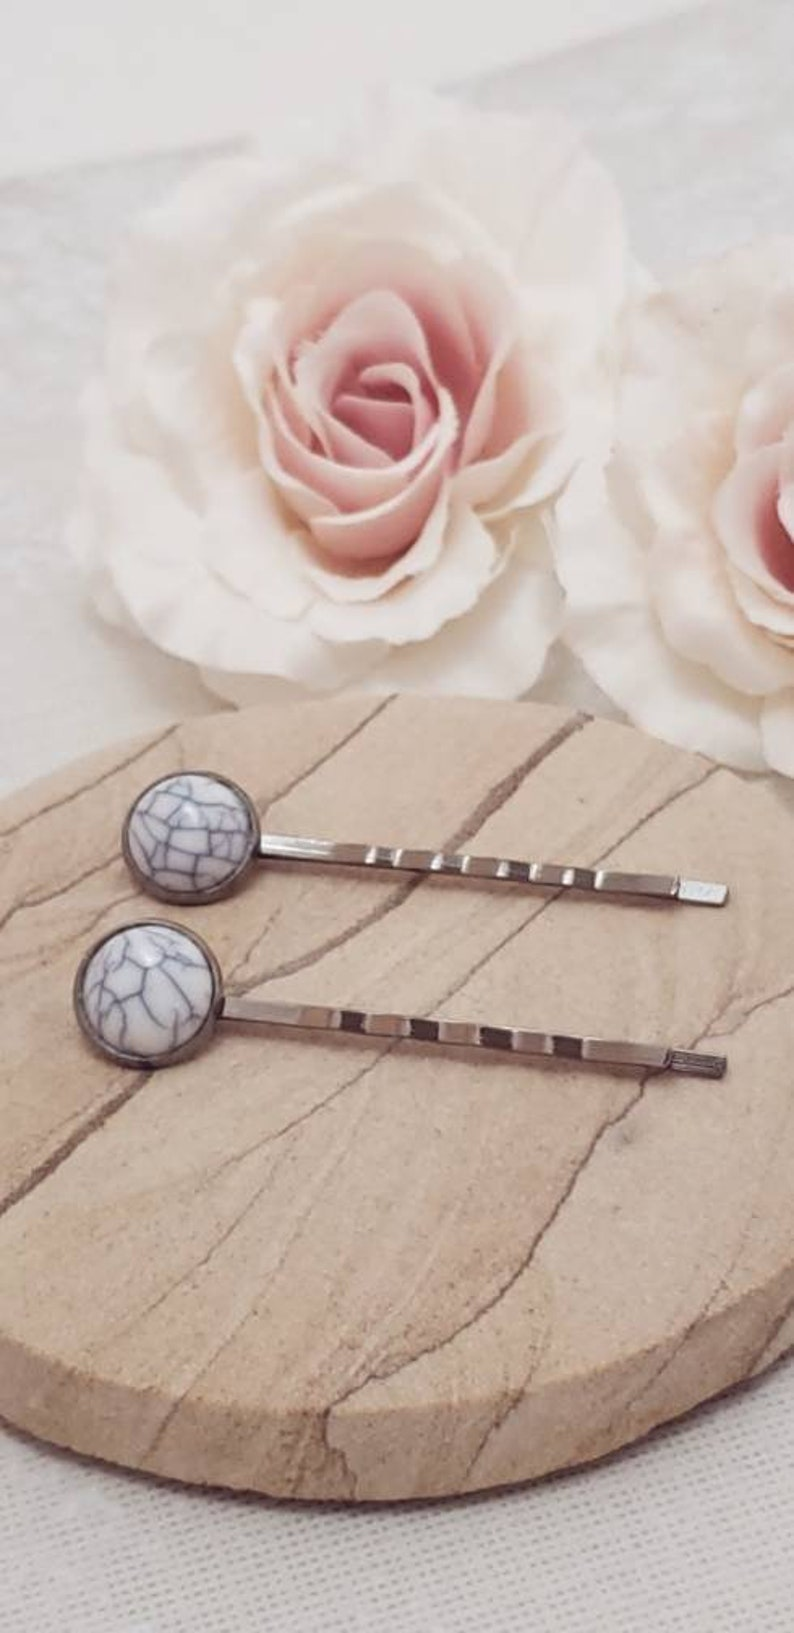 Soccer Bobby Hair Pin Bridal & Wedding Party Jewelry